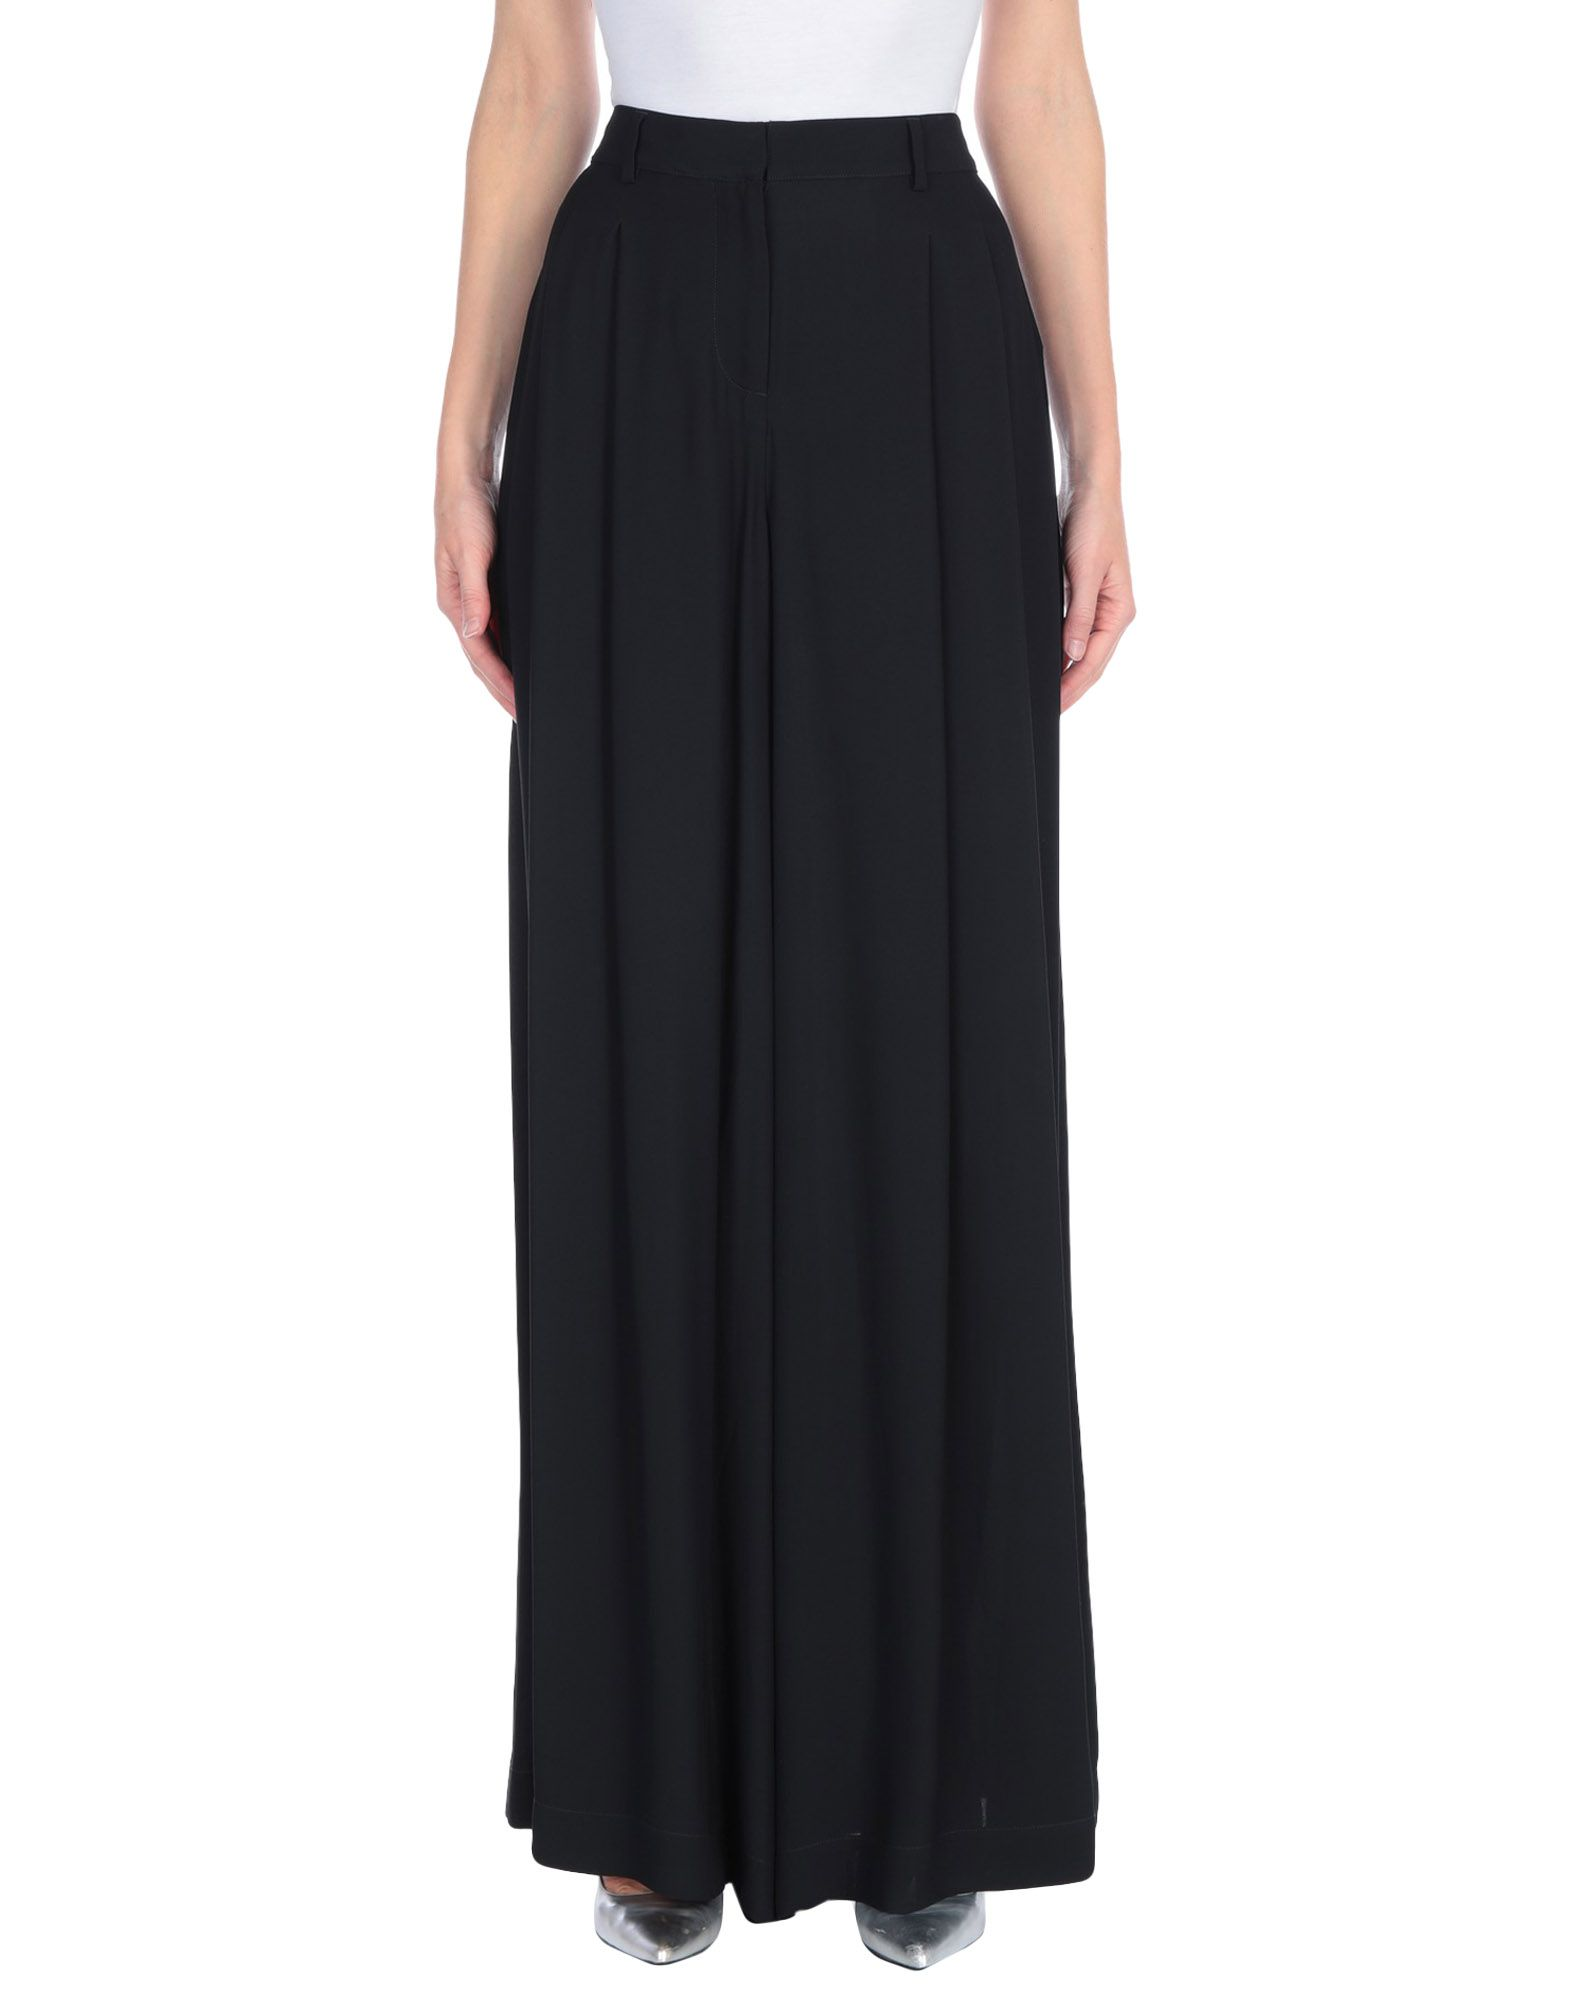 OFF-WHITE™ Long skirts. crepe, folds, basic solid color, high waisted, no pockets, unlined. 100% Viscose